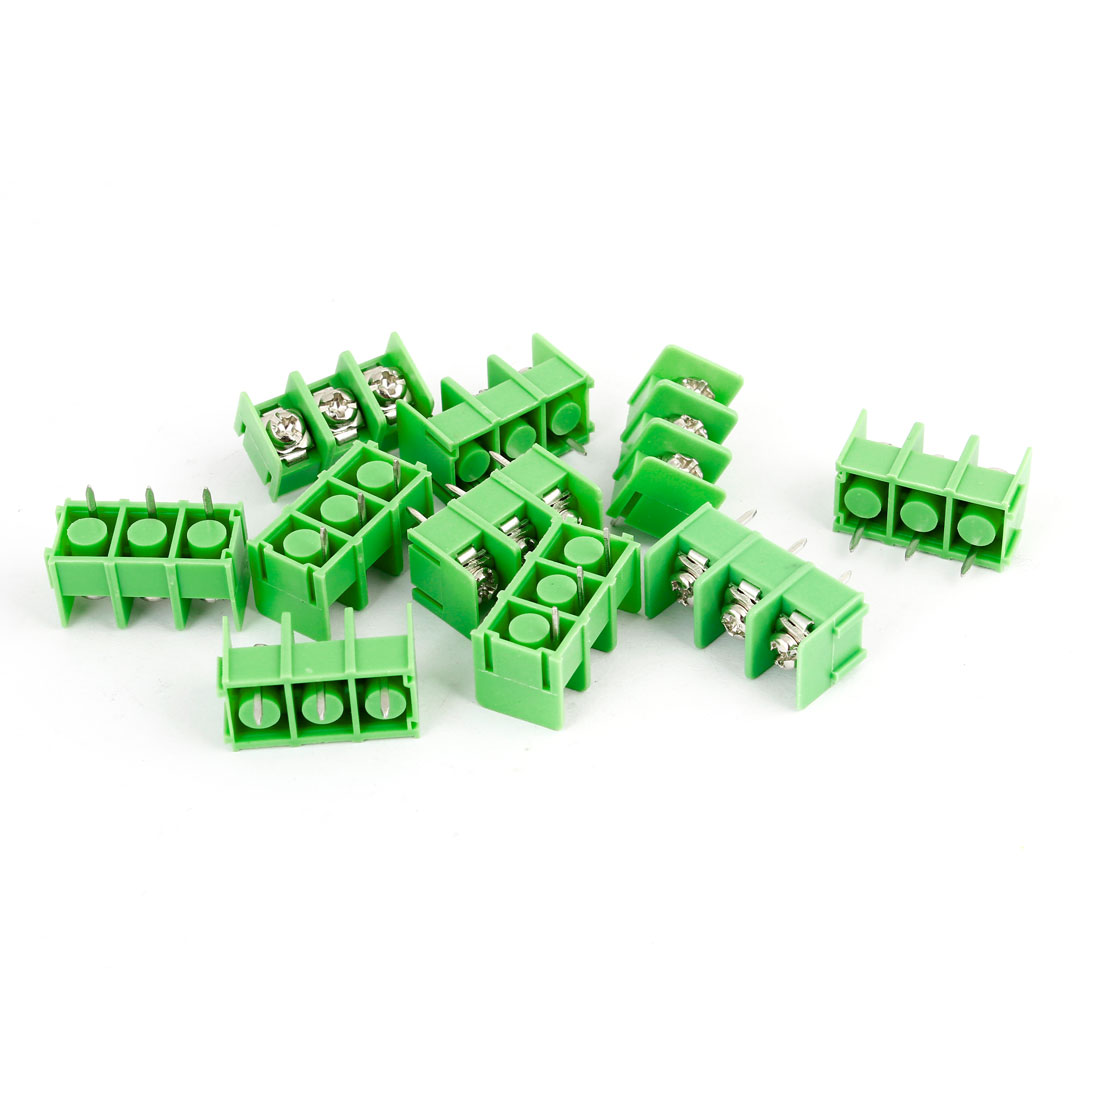 10pcs Green 3 Pin 7.62mm Single Row Screw Pluggable Terminal Block Straight Connector 300V 20A